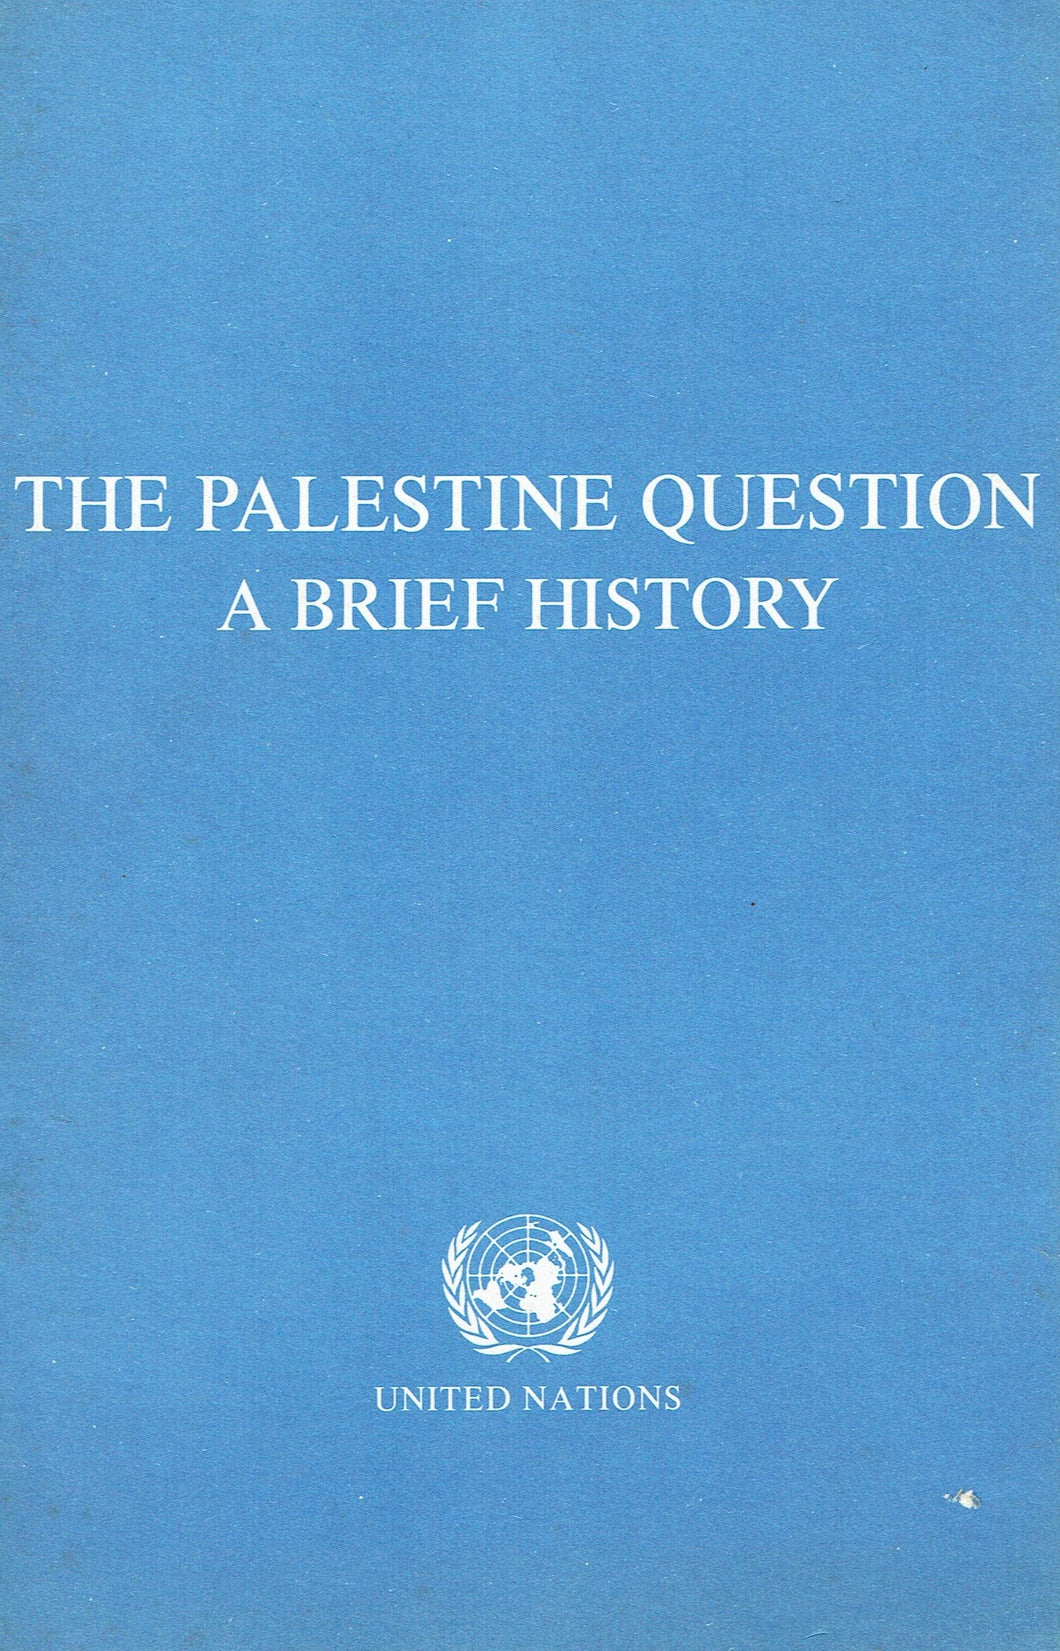 The Palestine Question: A Brief History - Prepared for, and under the guidance of, the Committee on the Exercise of the Inalienable Rights of the Palestinian People